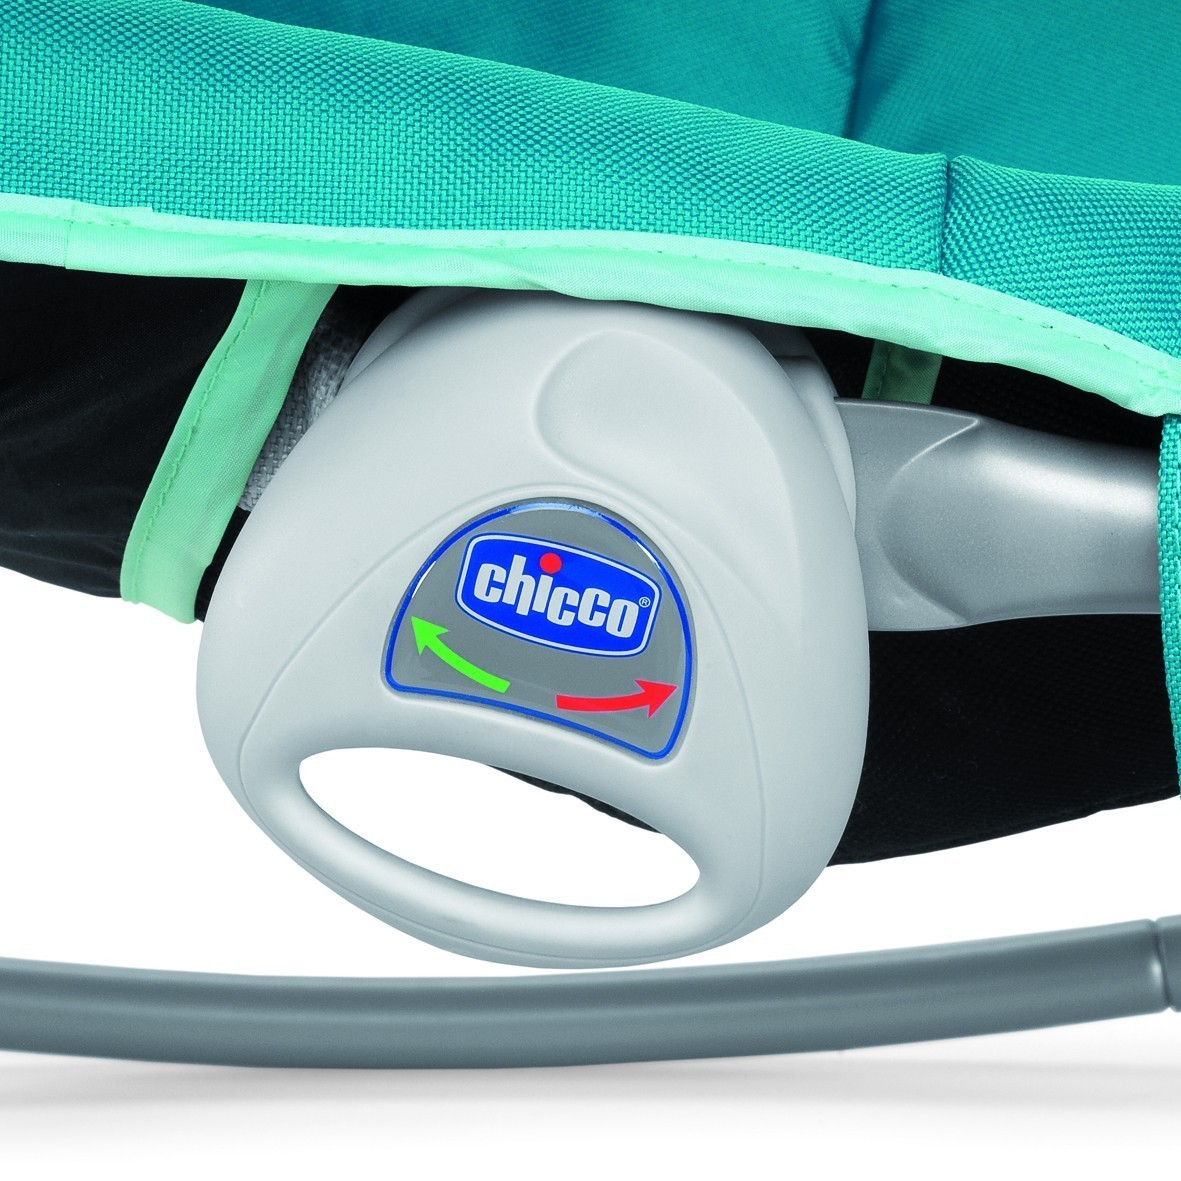 Chicco Schaukelwippe Easy Relax Green 2014